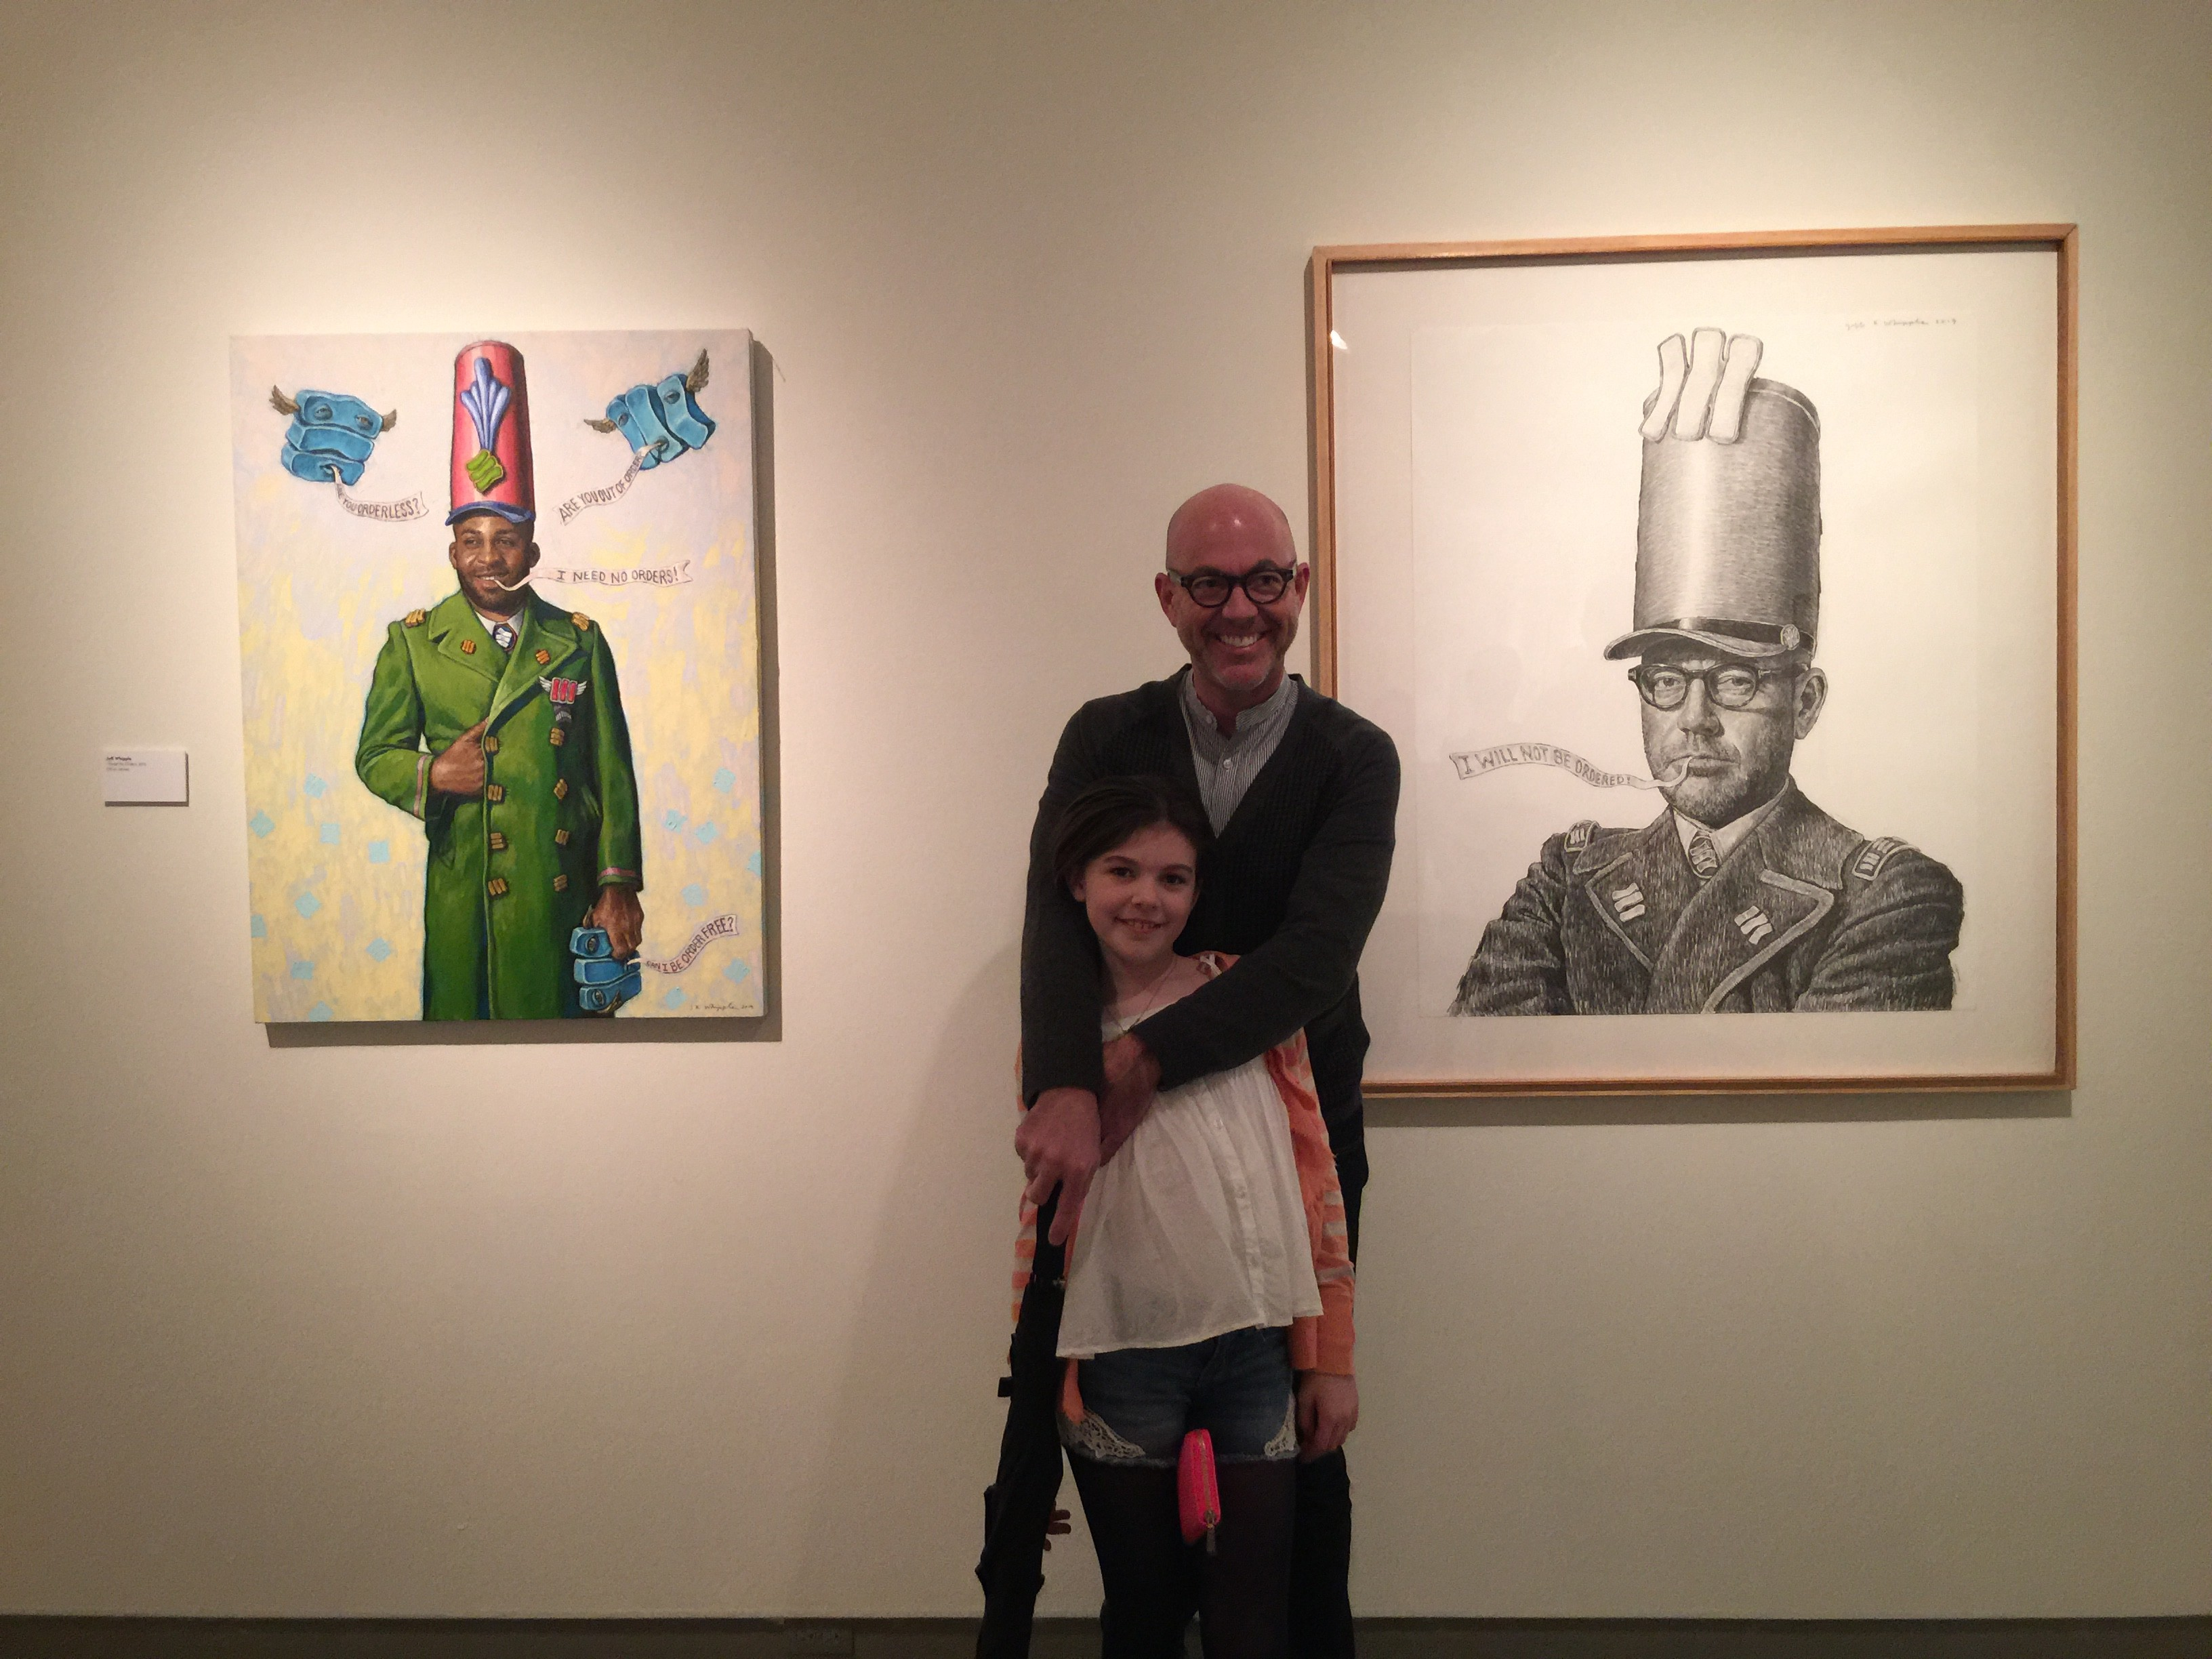 My dad, Steve Williams, and sister, Avery, standing with Jeff Whipple's art at MOCA